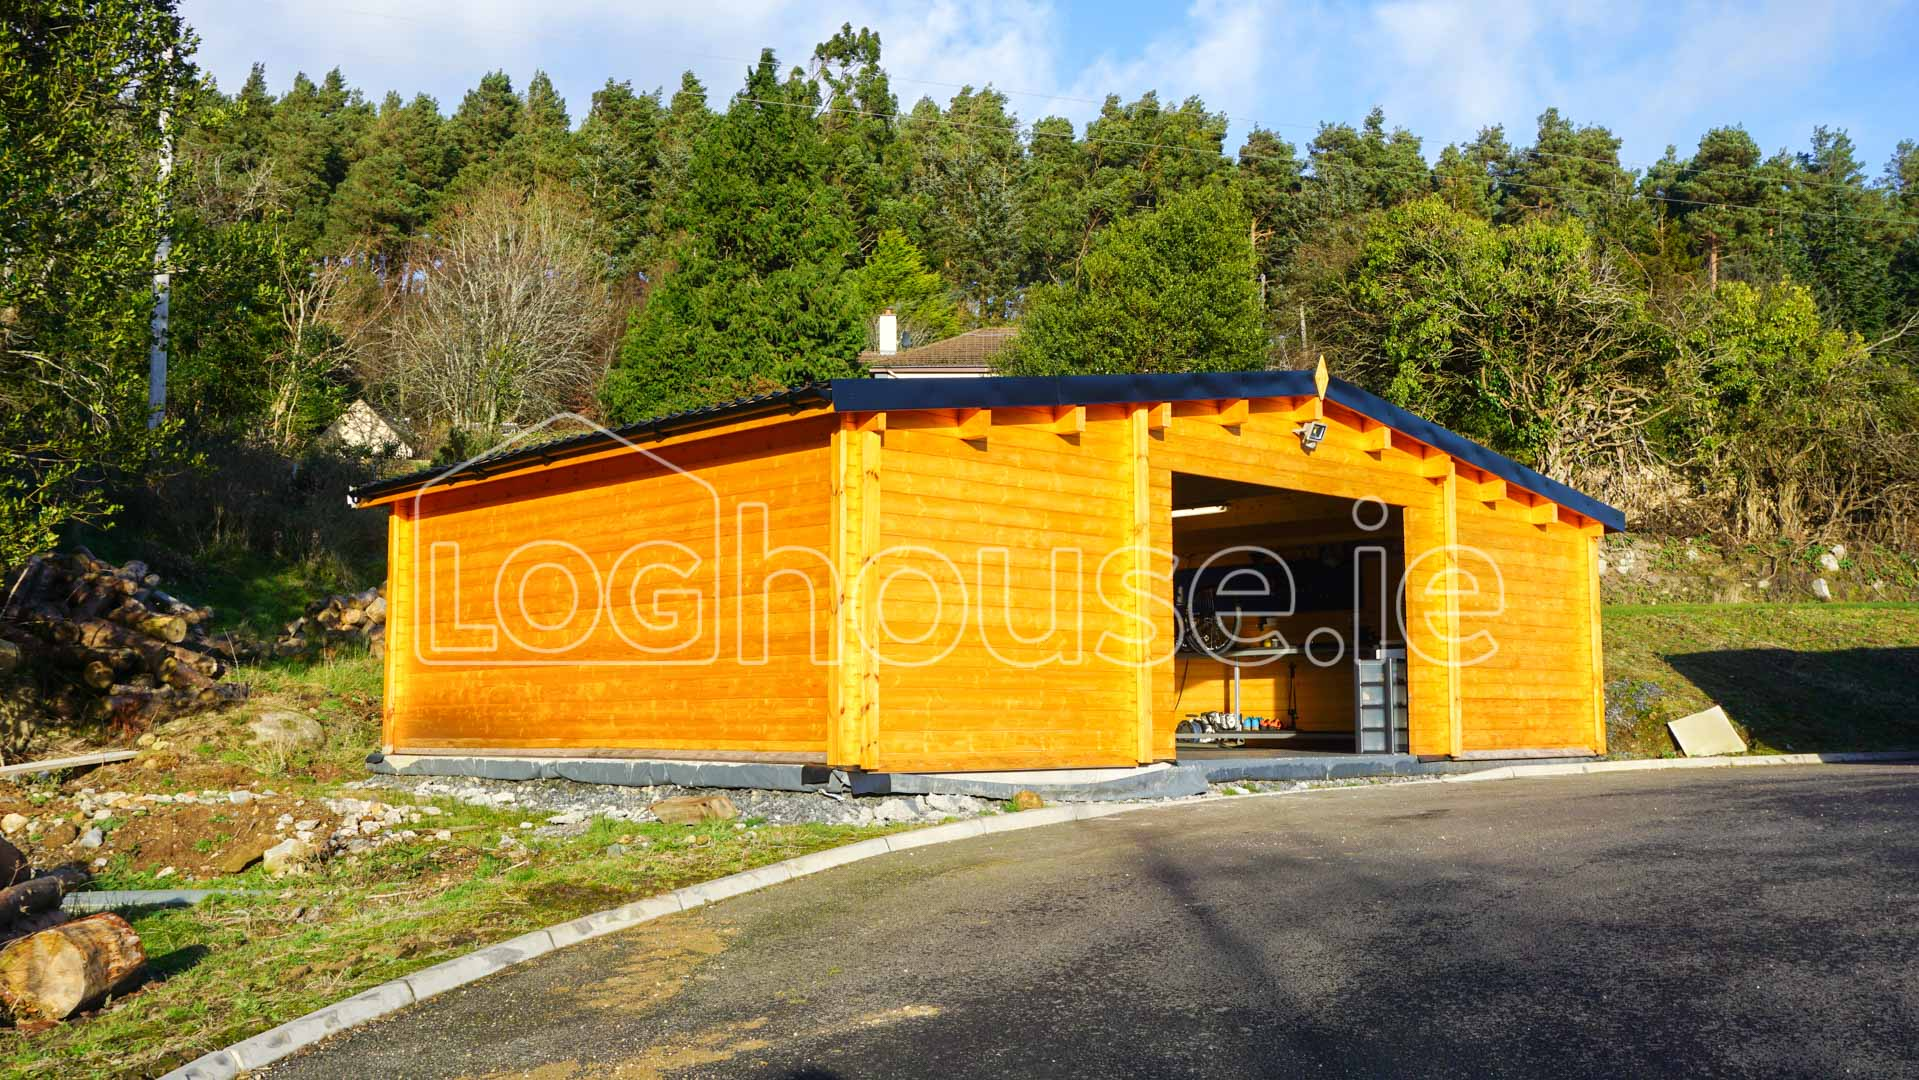 garage log cabin loghouse ie at loghouse ie we design and build a comprehensive range of premium quality log cabins and log houses intended speci cally for the irish market and to